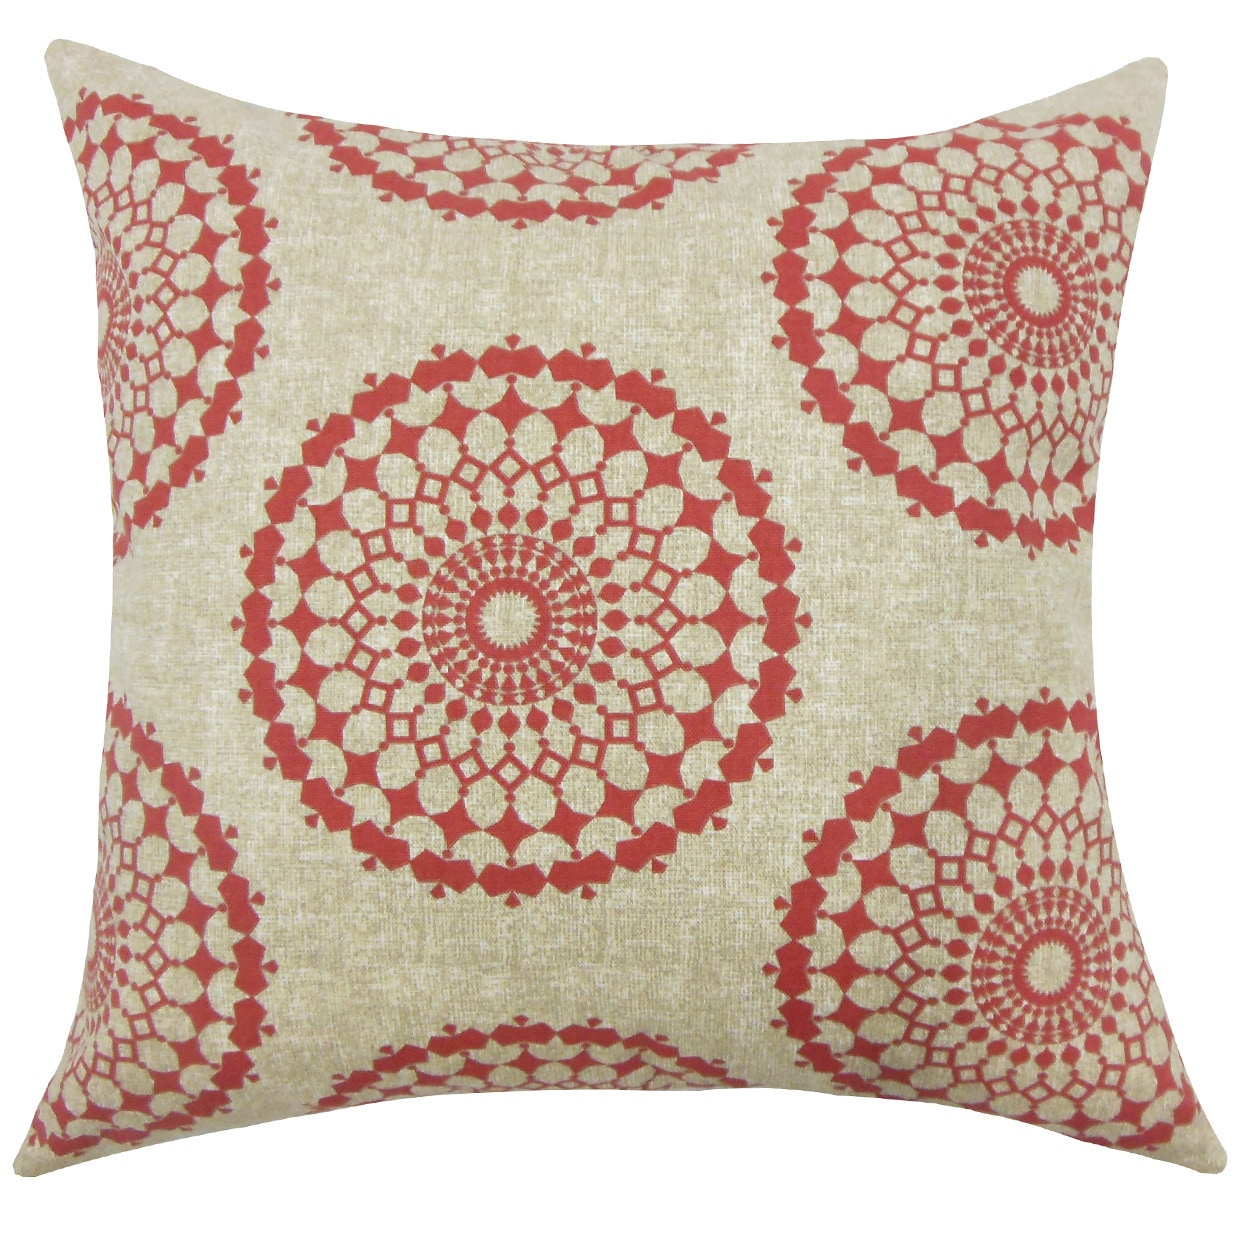 Elyes Geometric 22 Inch Down Feather Throw Pillow Pomegranate Overstock 15266672